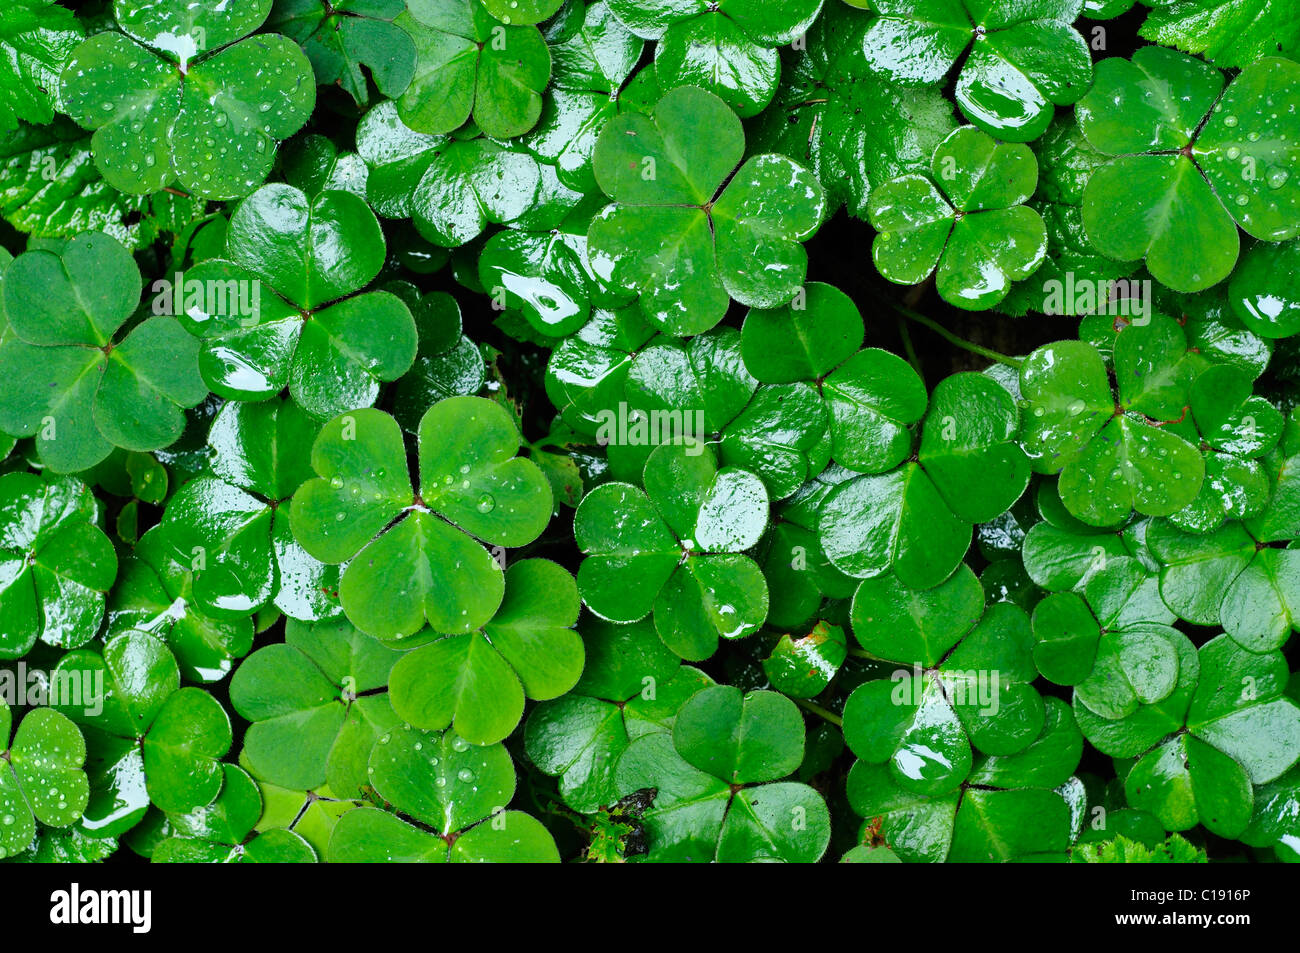 Clover leaves - Stock Image